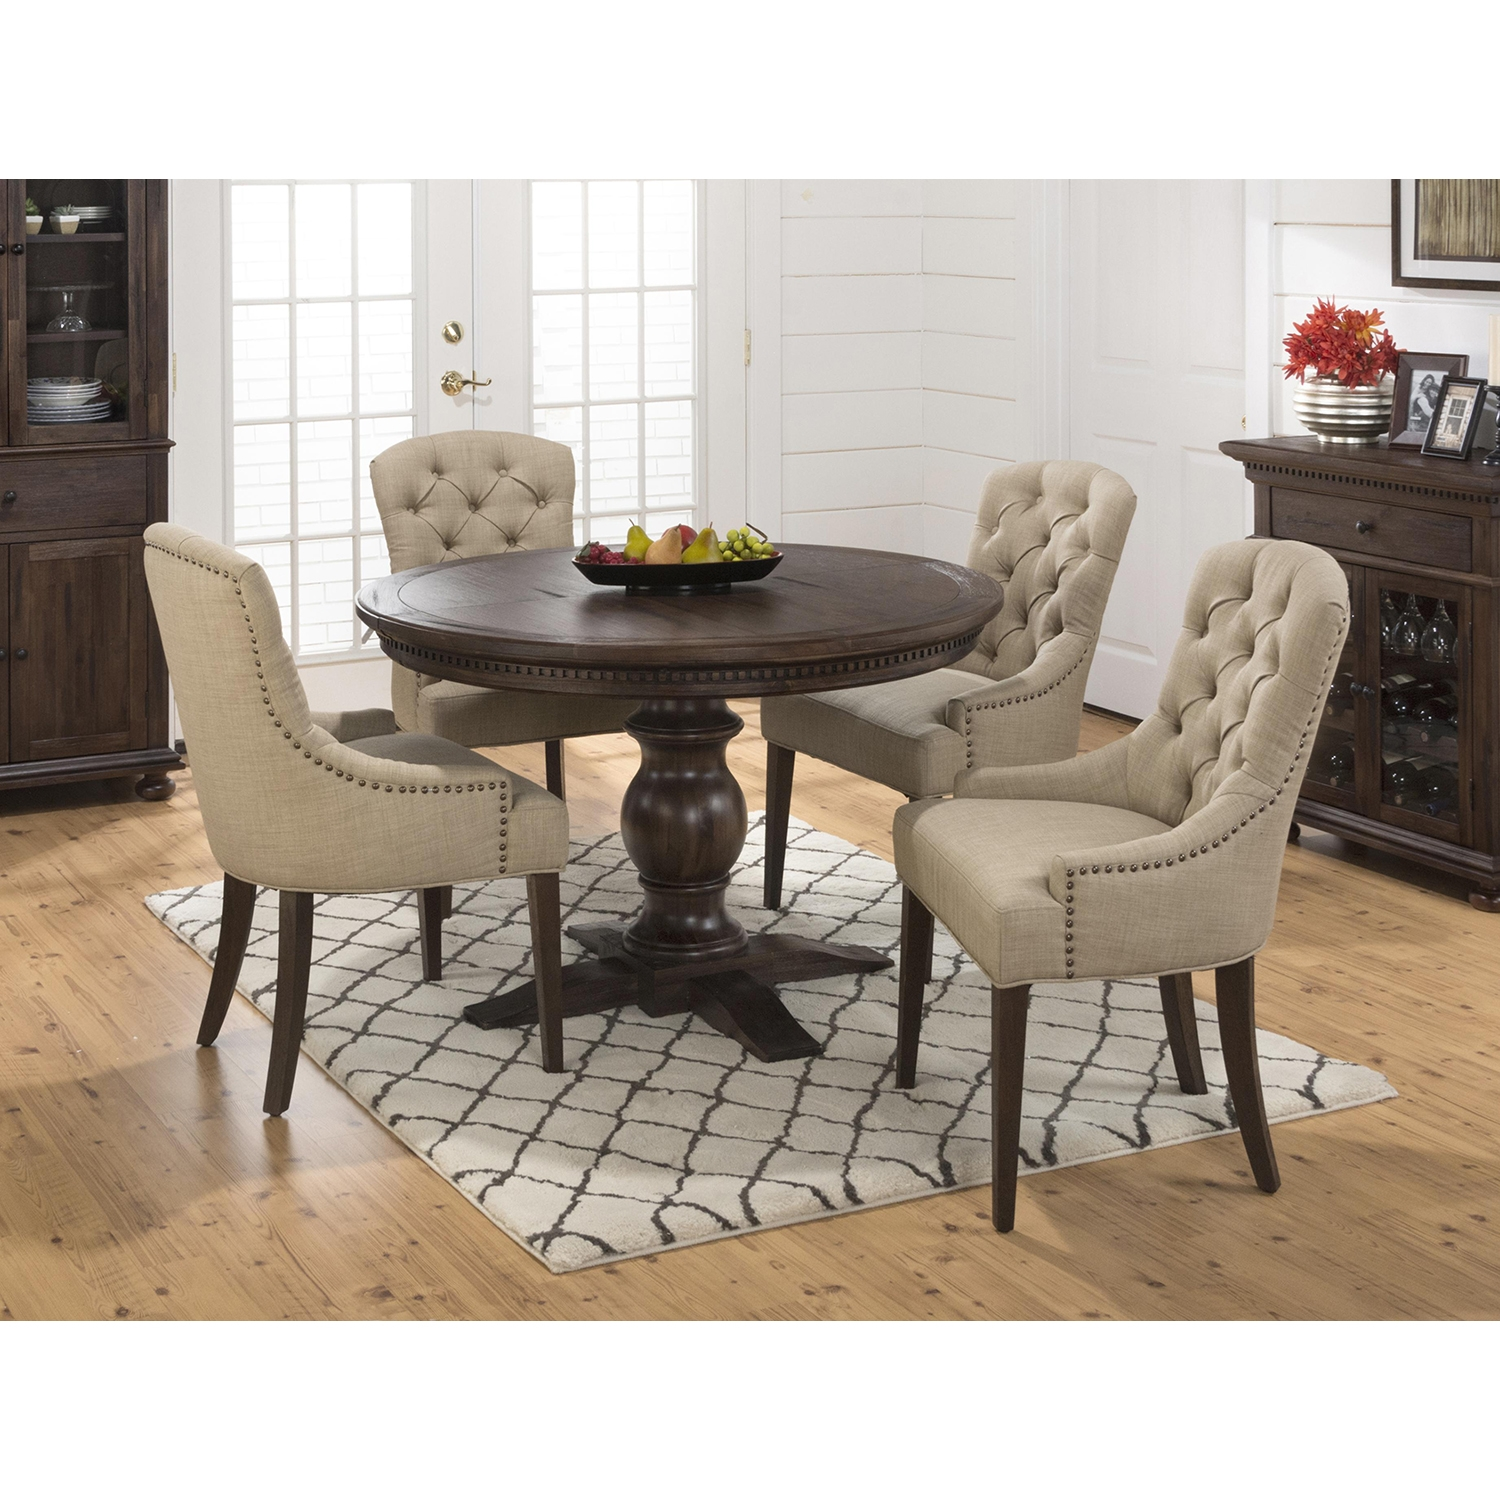 Geneva Hills Tufted Side Chair - JOFR-678-212KD